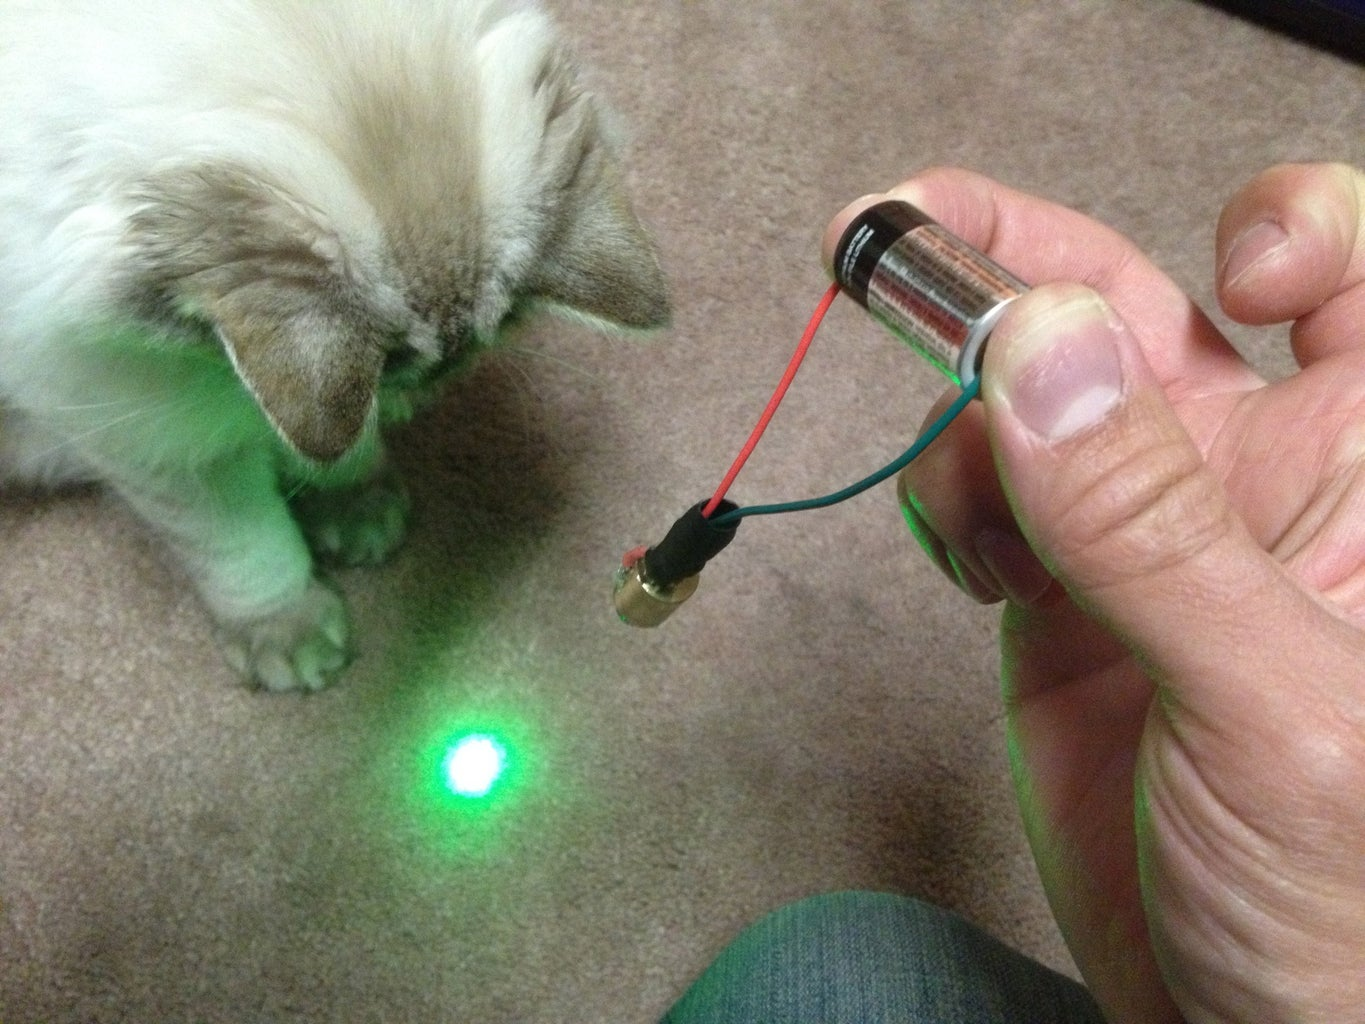 Hack a Laser Pointer (optional If You Don't Just Buy a Laser Module From Amazon)